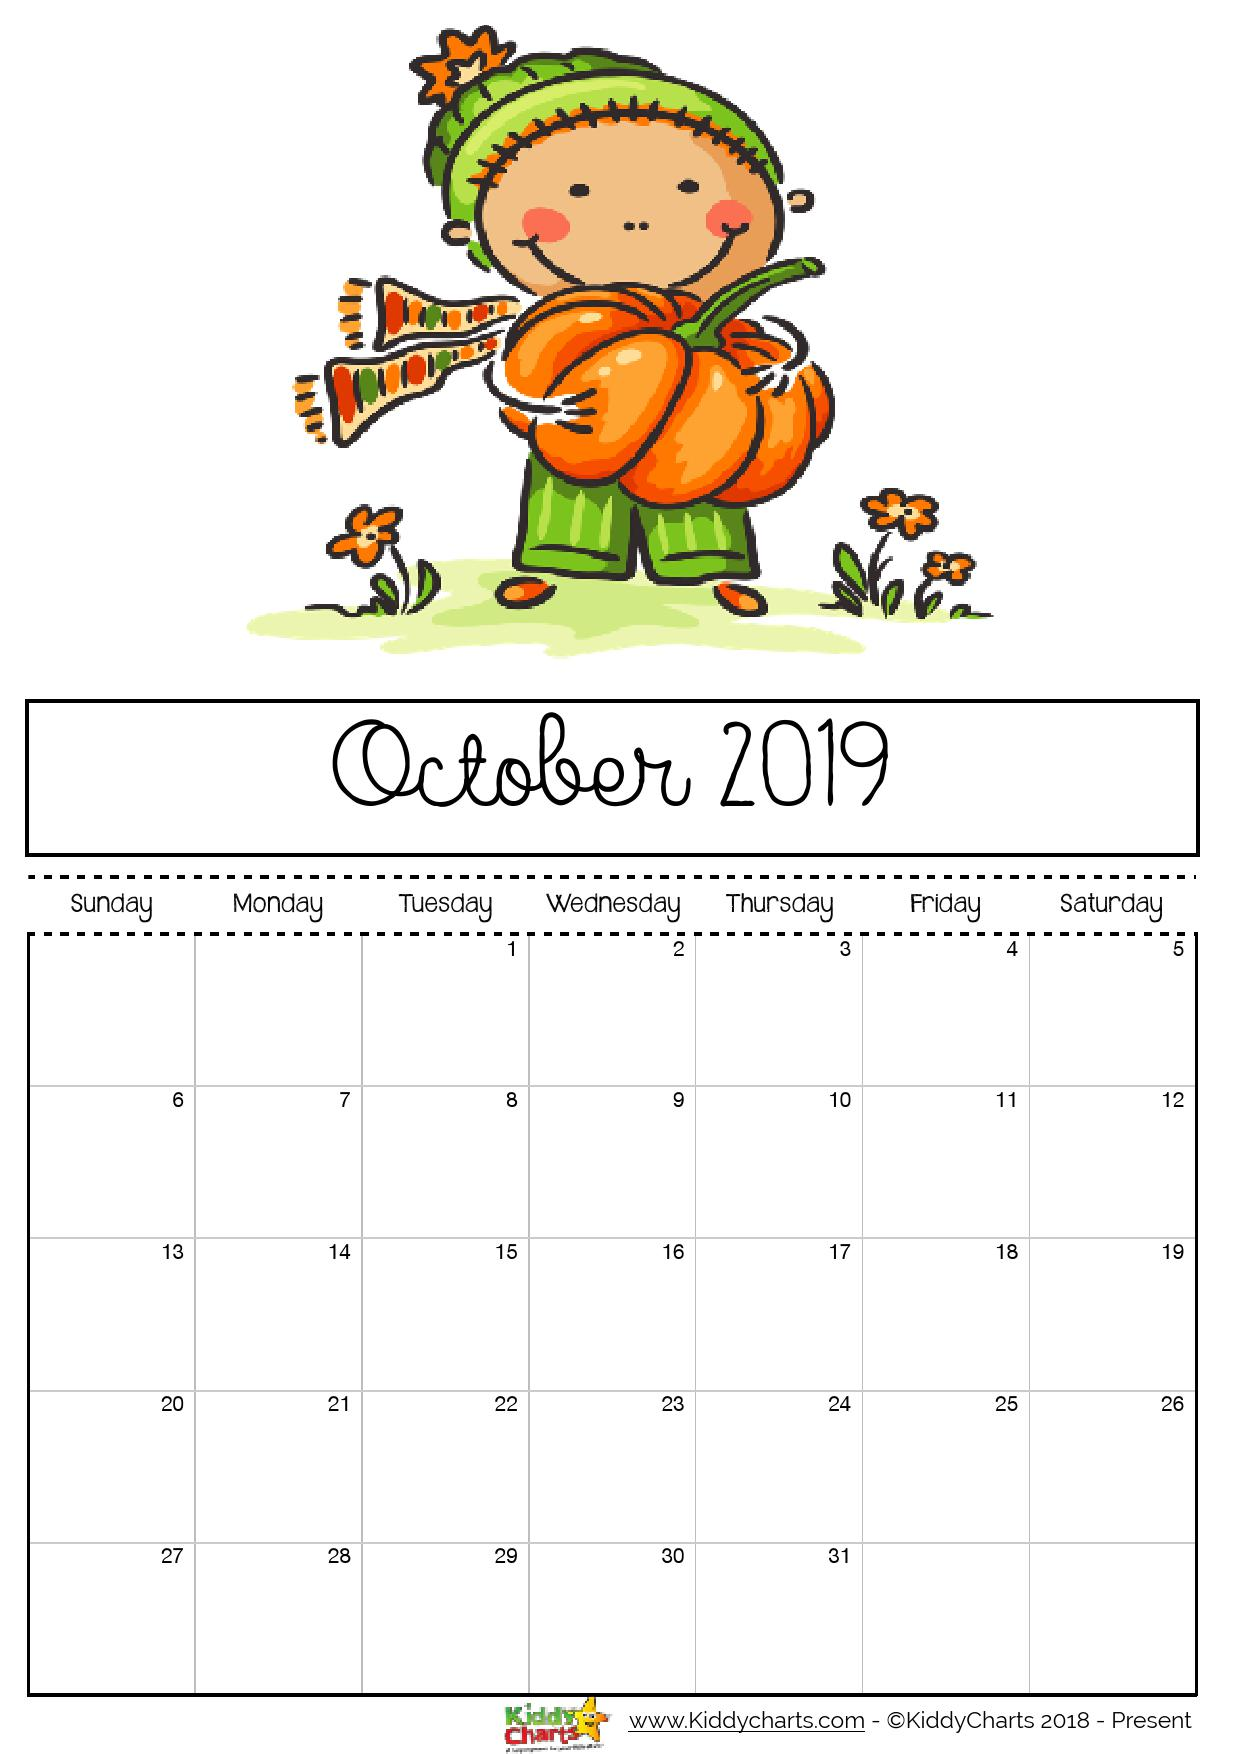 Boy with a pumpkin, and it is so very nearly pumpkin time! #printables #kidsprintables #2019calendar